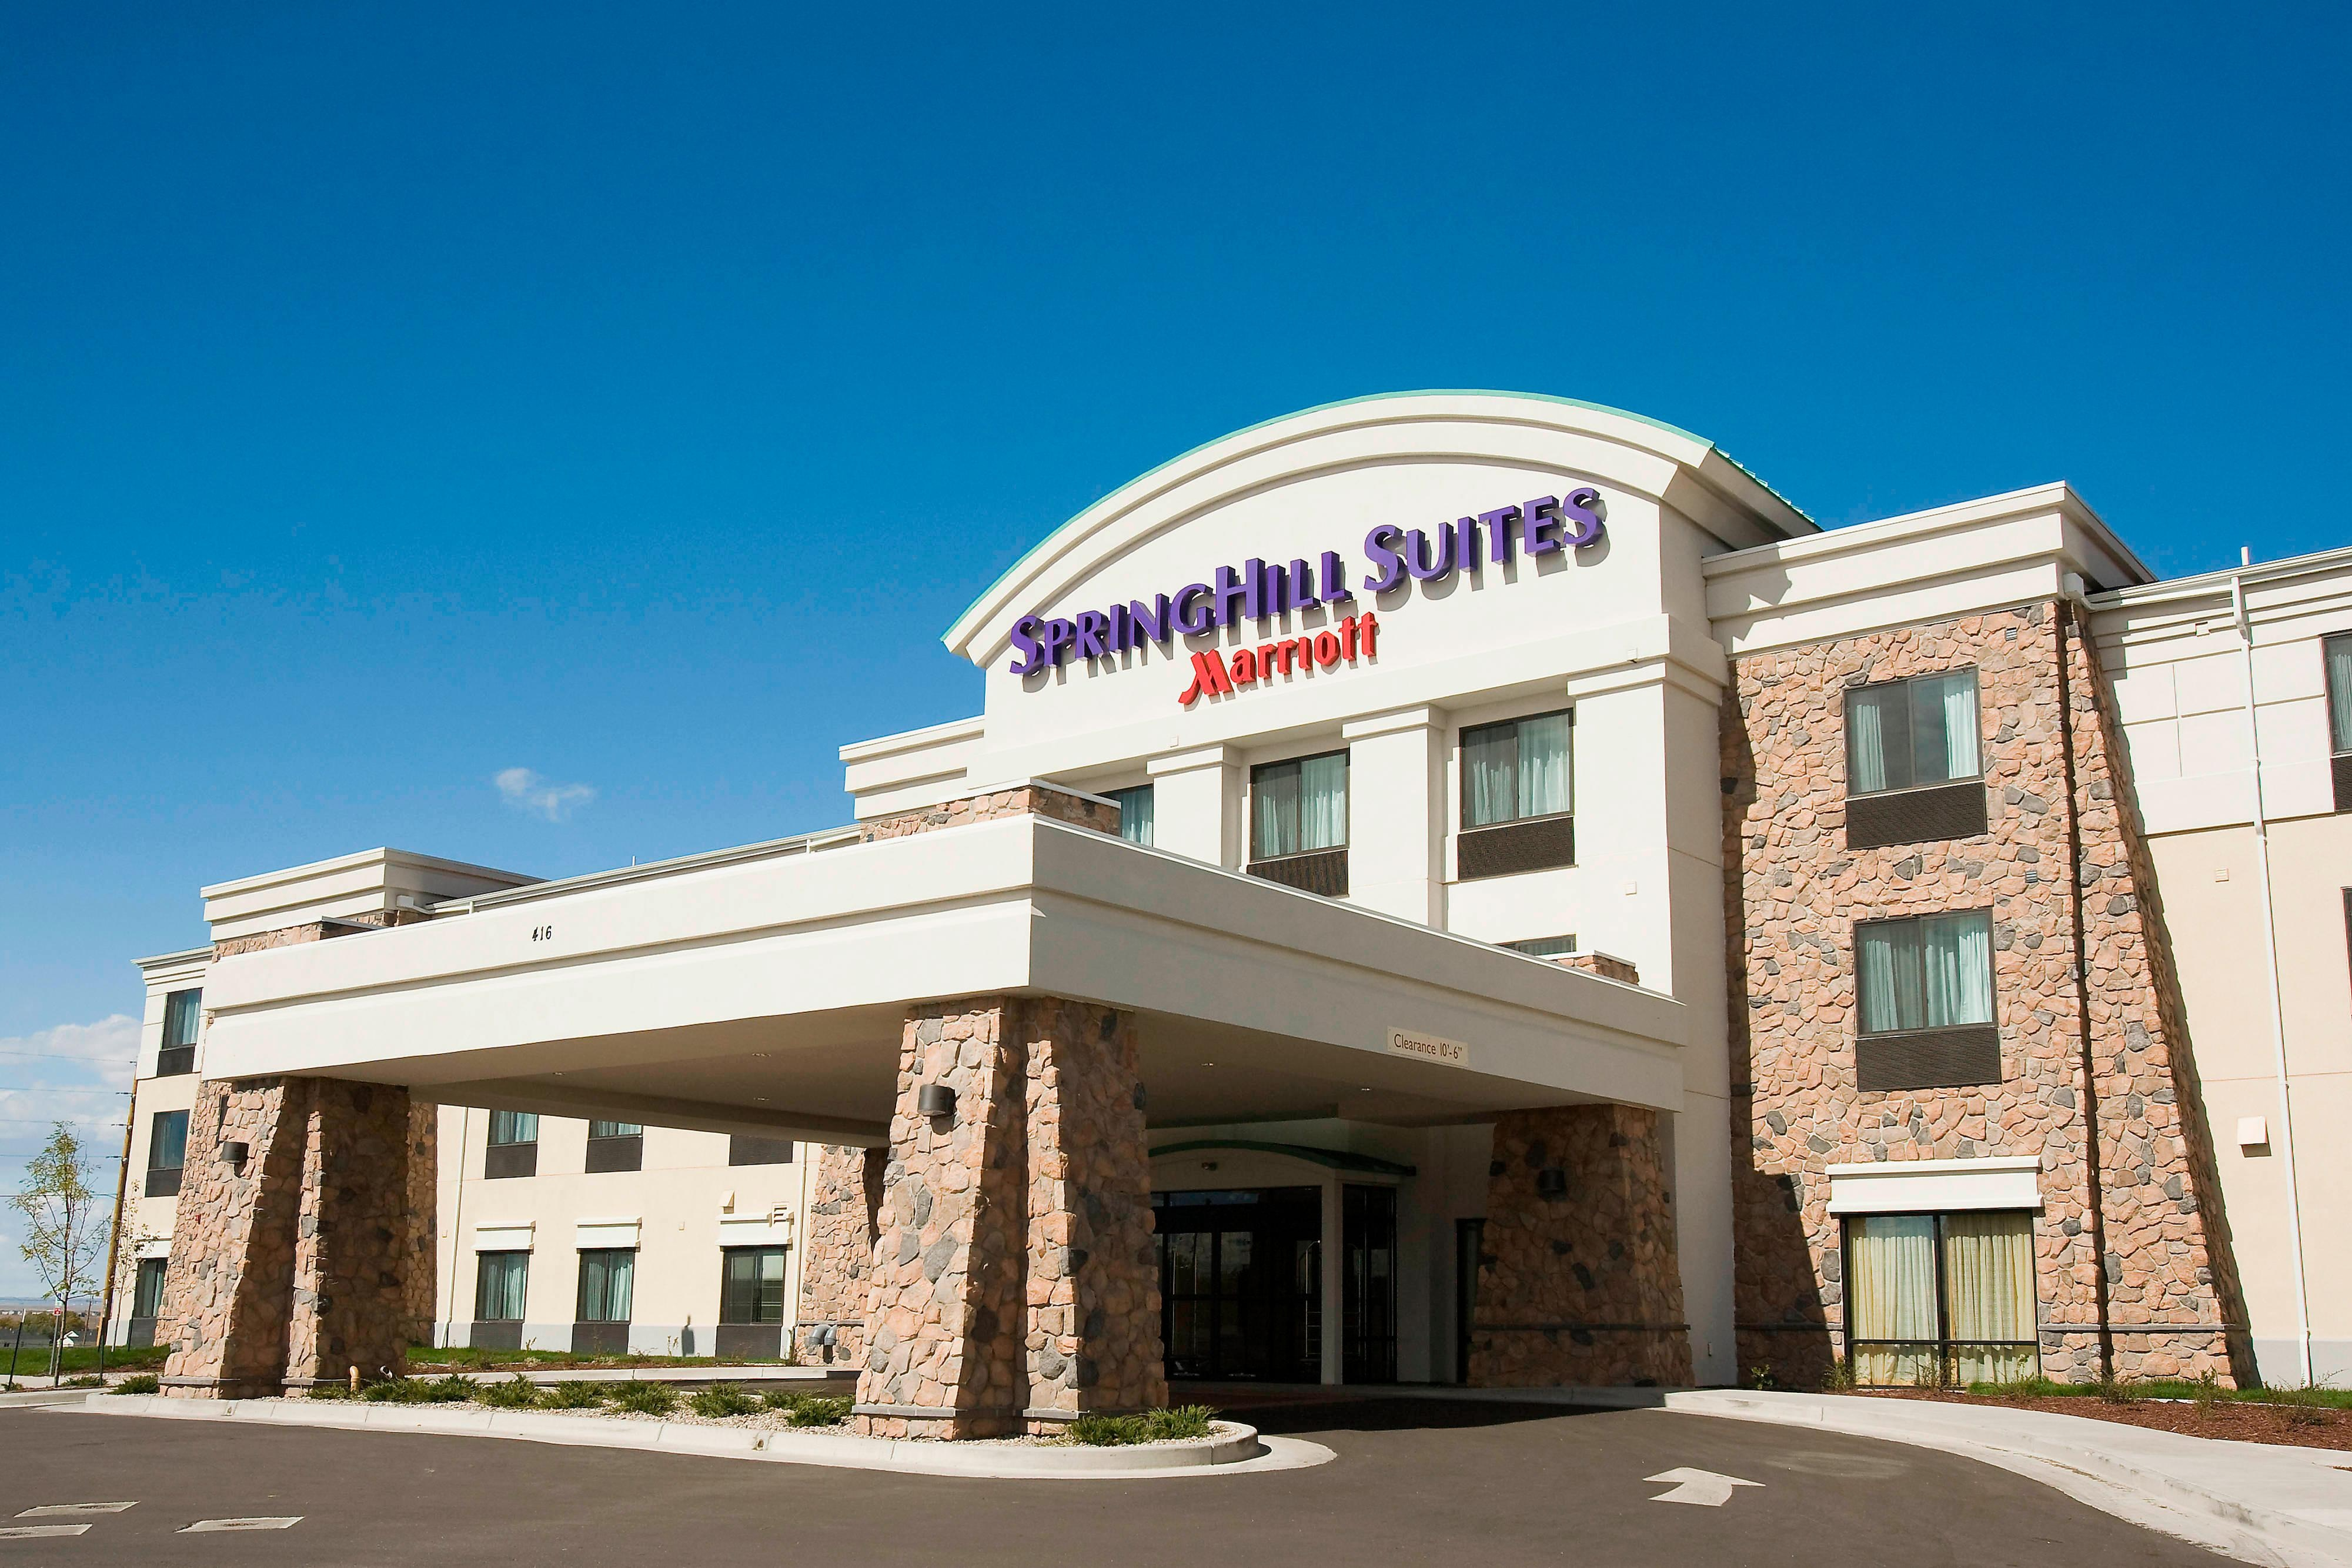 Extended-stay hotel entrance in Cheyenne